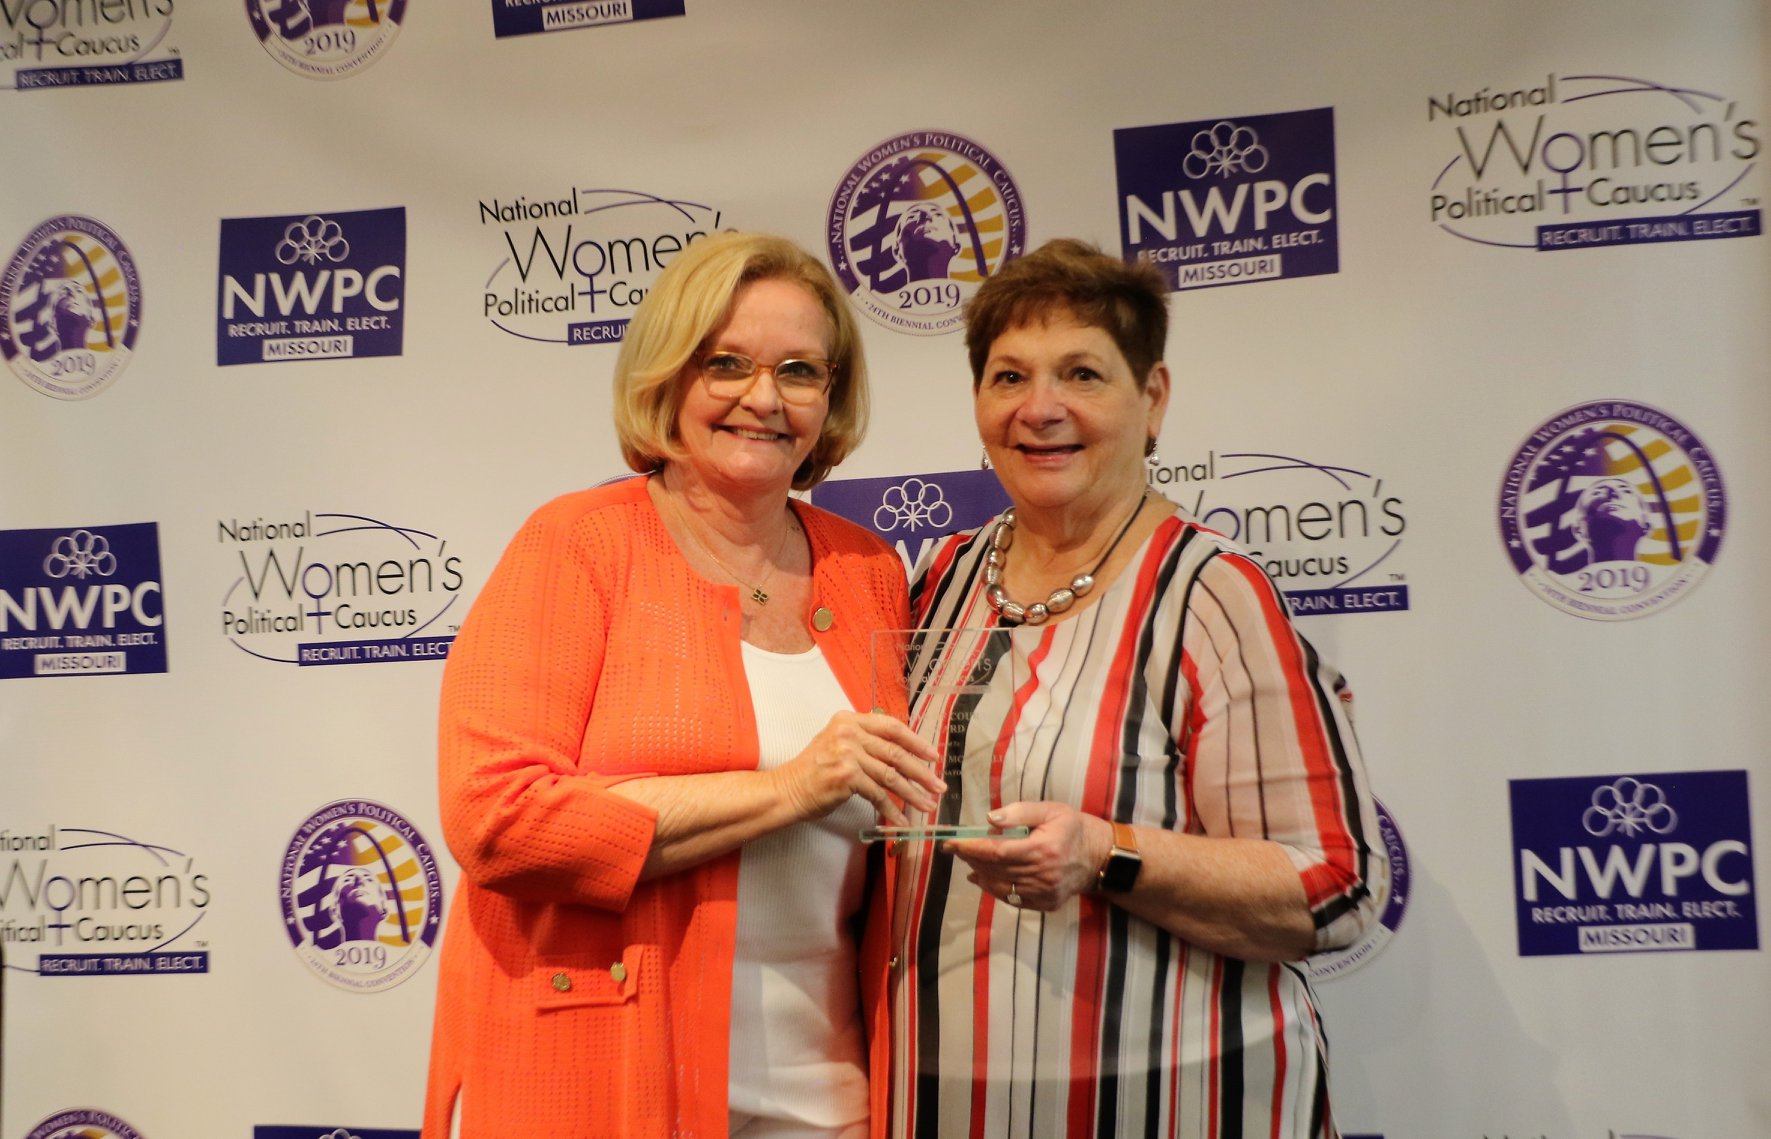 Former Senator Claire McCaskill receiving Women of Courage award from NWPC President Donna Lent -